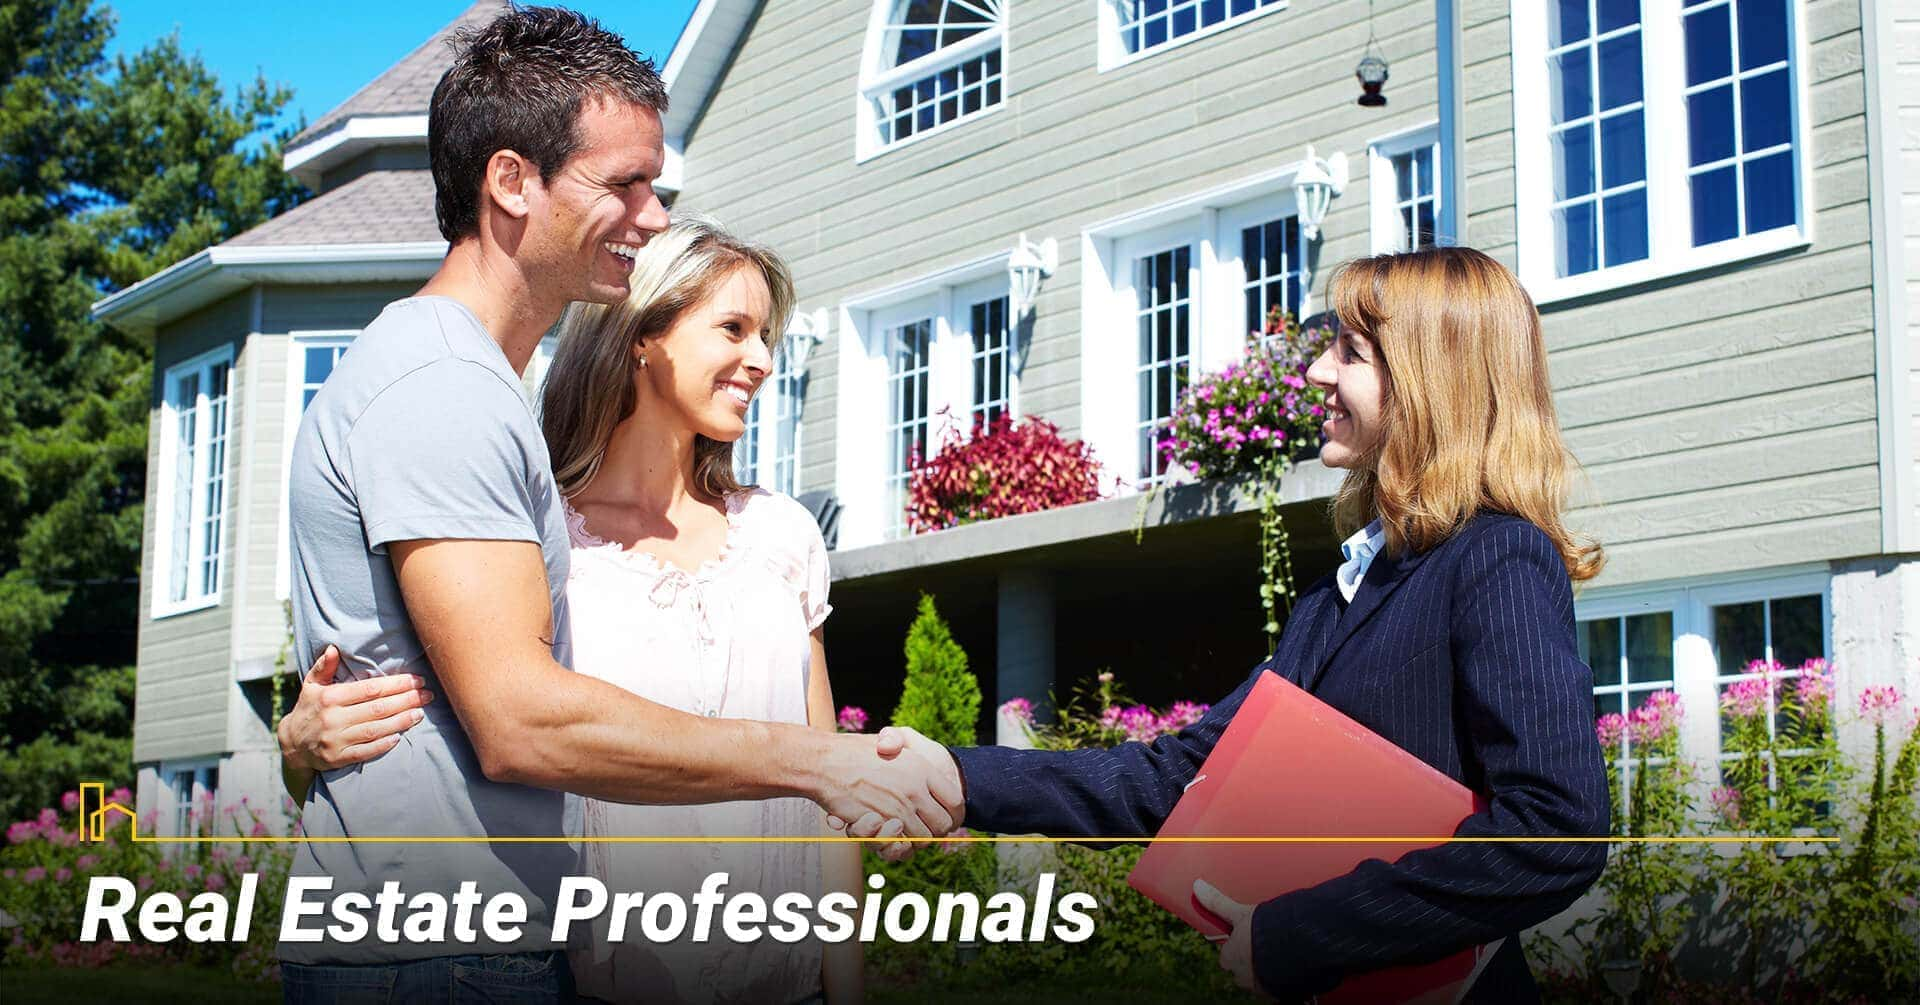 Real Estate Professionals, take advice from your real estate agent